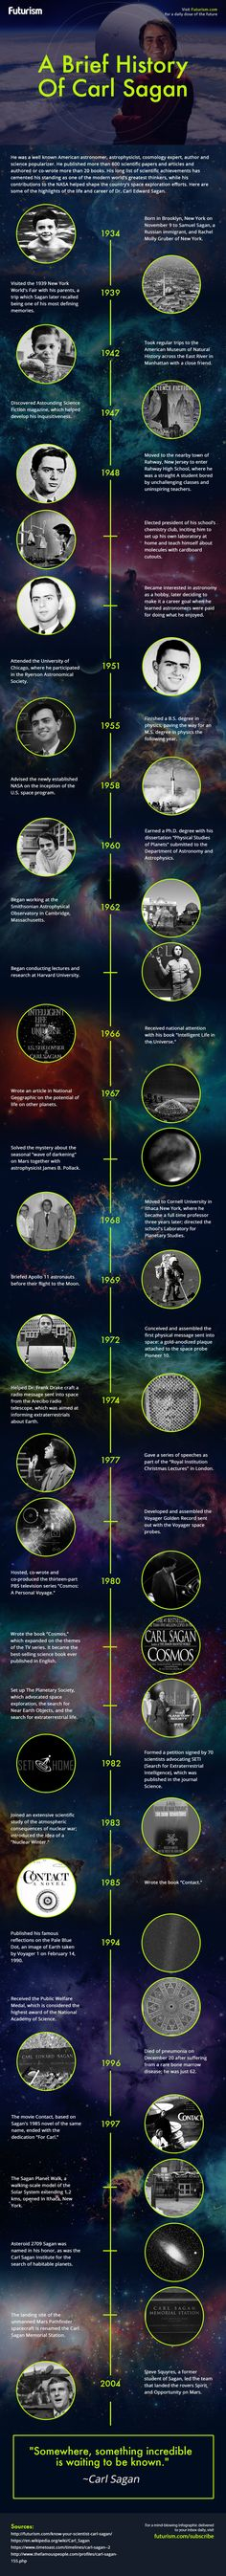 This is the story of Carl Sagan, the man who made us care about the Universe. http://futurism.com/images/a-brief-history-of-carl-sagan-infographic/?utm_campaign=coschedule&utm_source=pinterest&utm_medium=Futurism&utm_content=A%20Brief%20History%20Of%20Carl%20Sagan%20%5BInfographic%5D